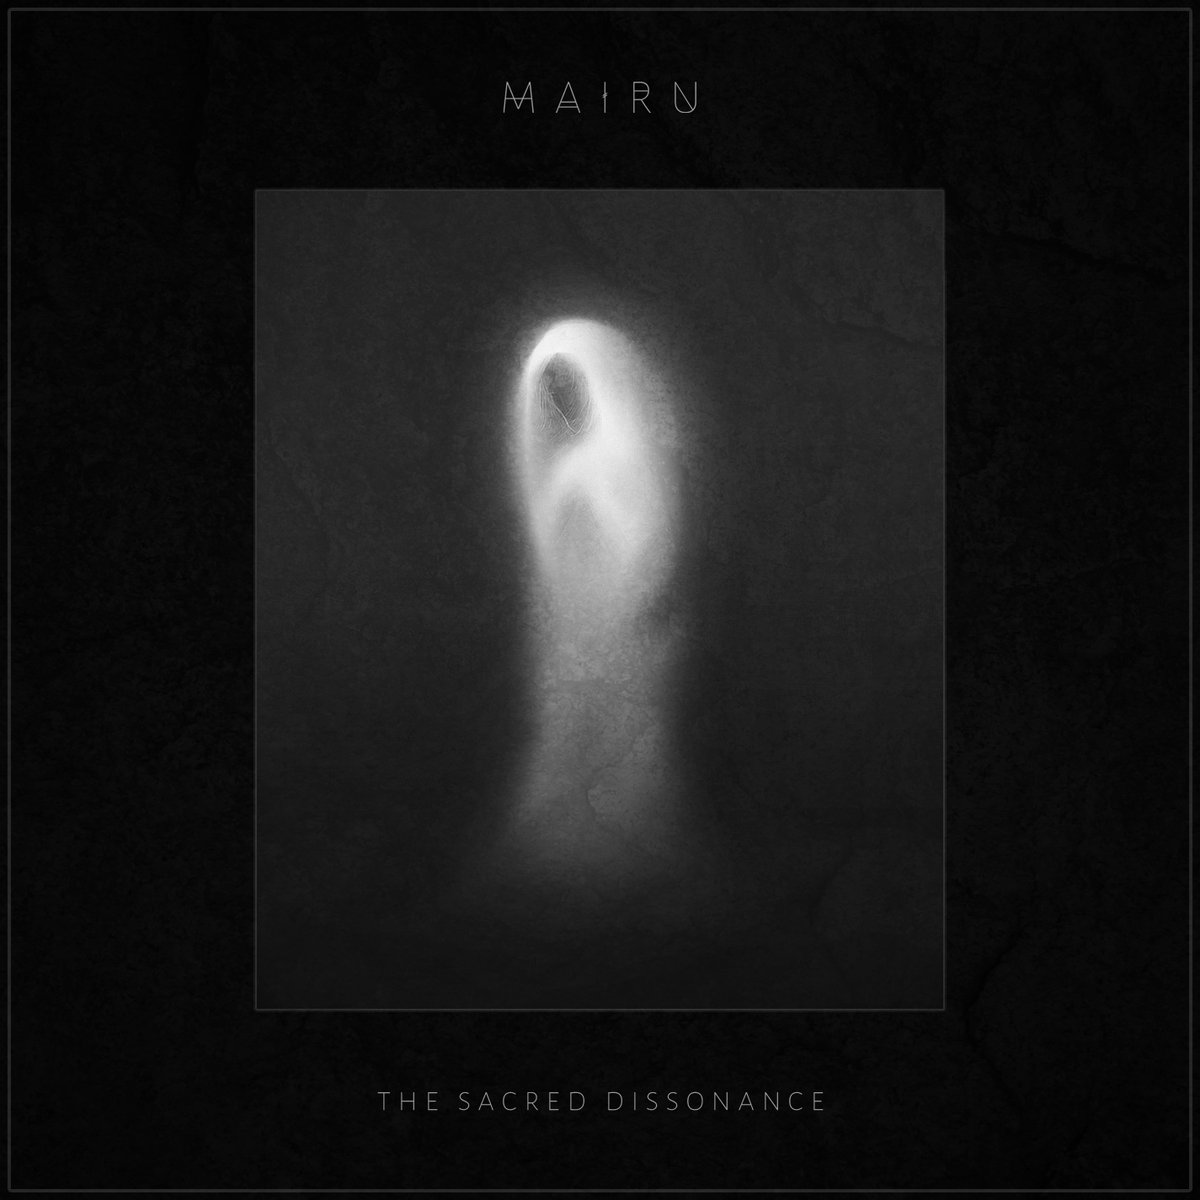 Mairu - The Sacred Dissonance